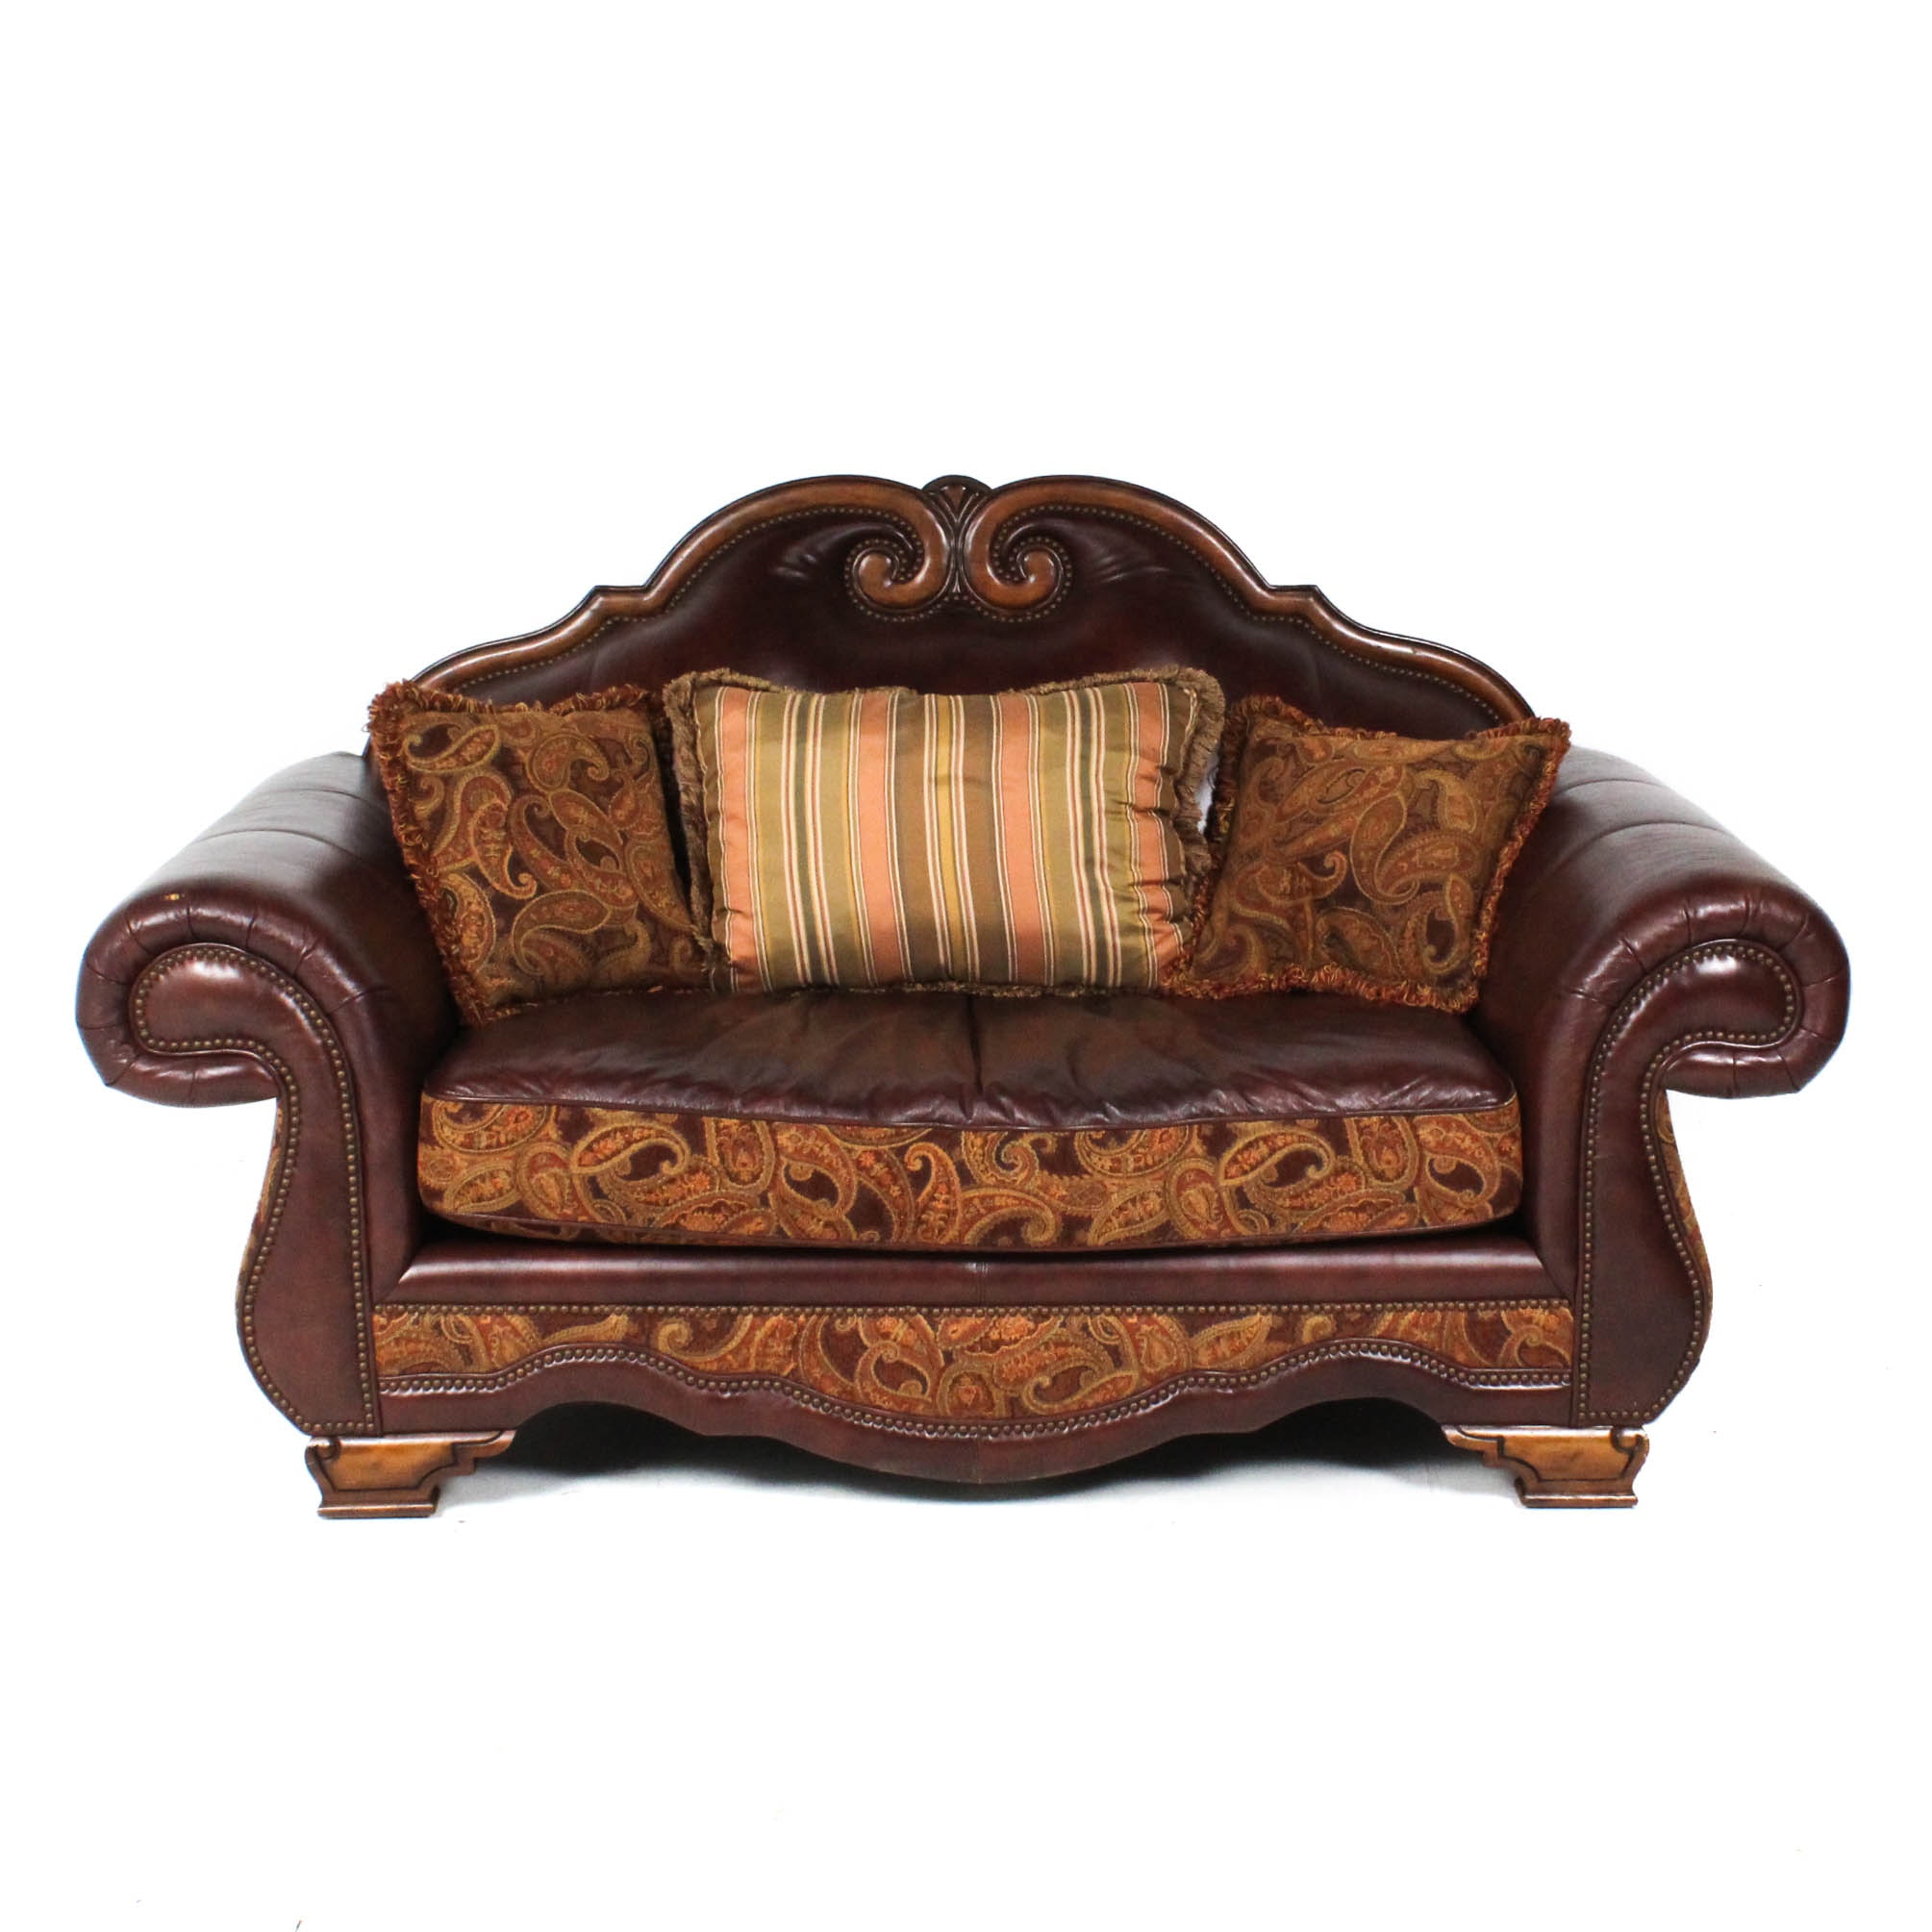 Michael Amini Leather and Paisley Loveseat